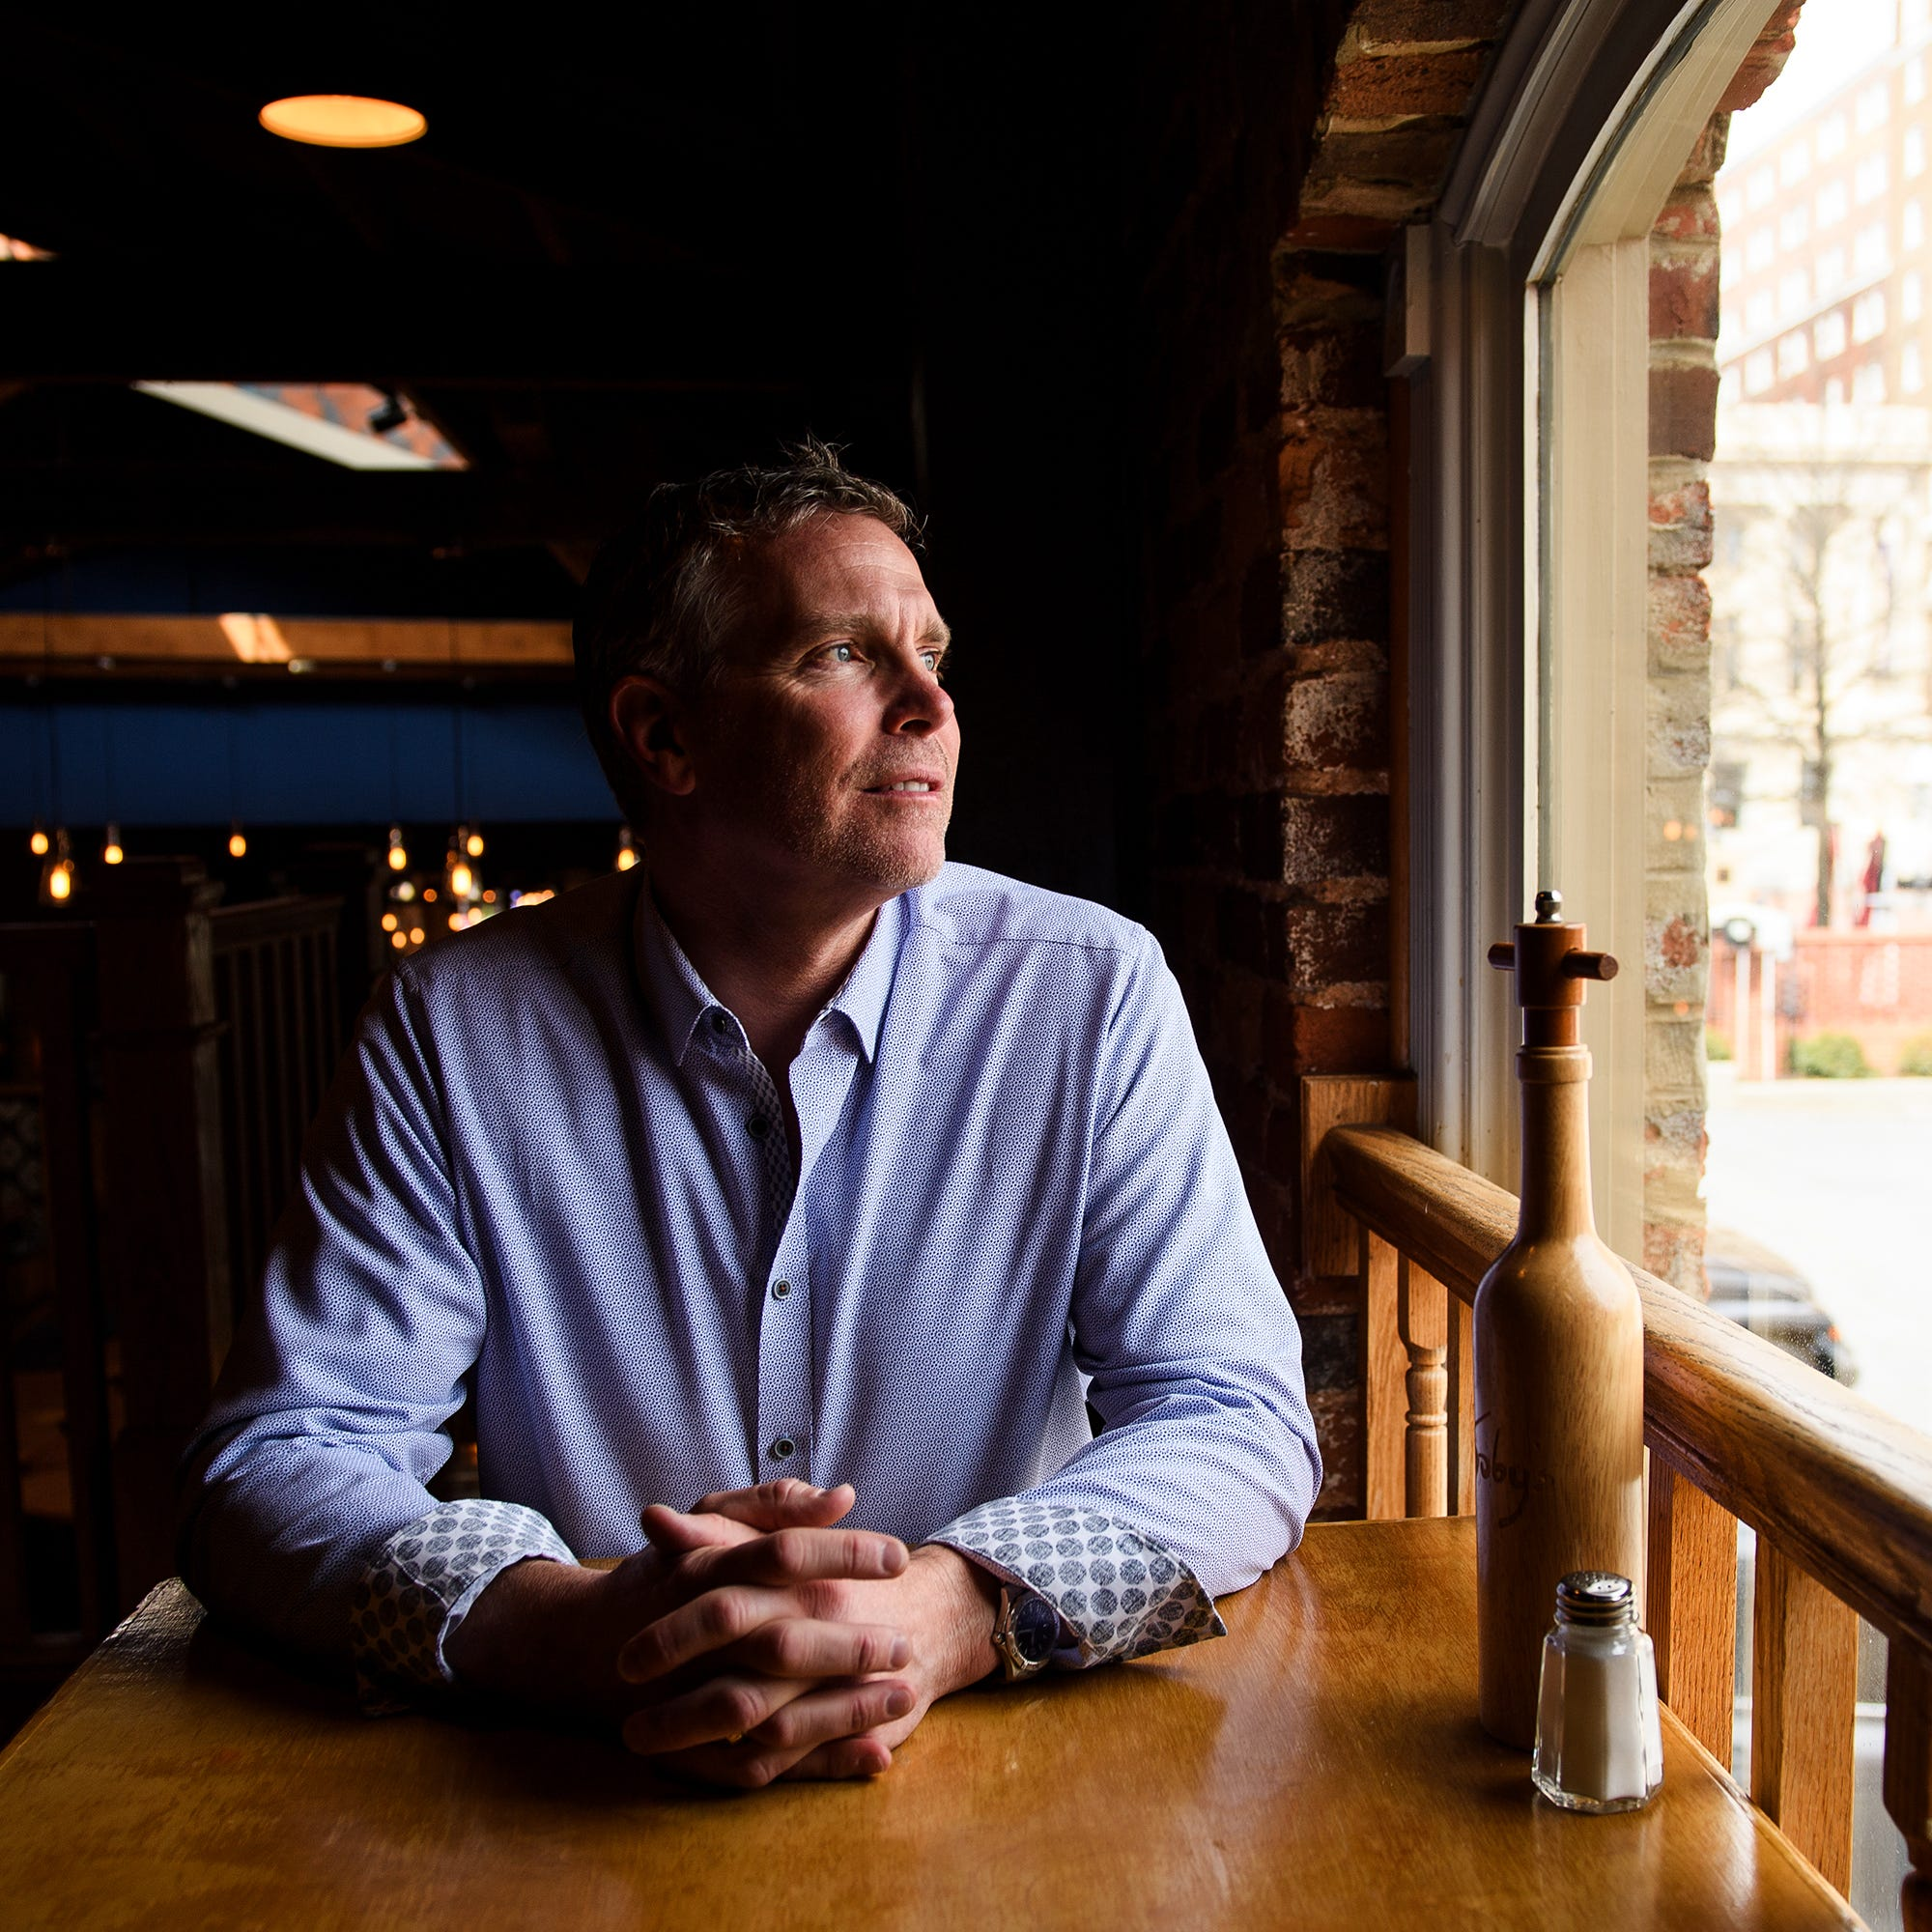 2 decades after opening Soby's, Table 301's Carl Sobocinski focused on group's legacy